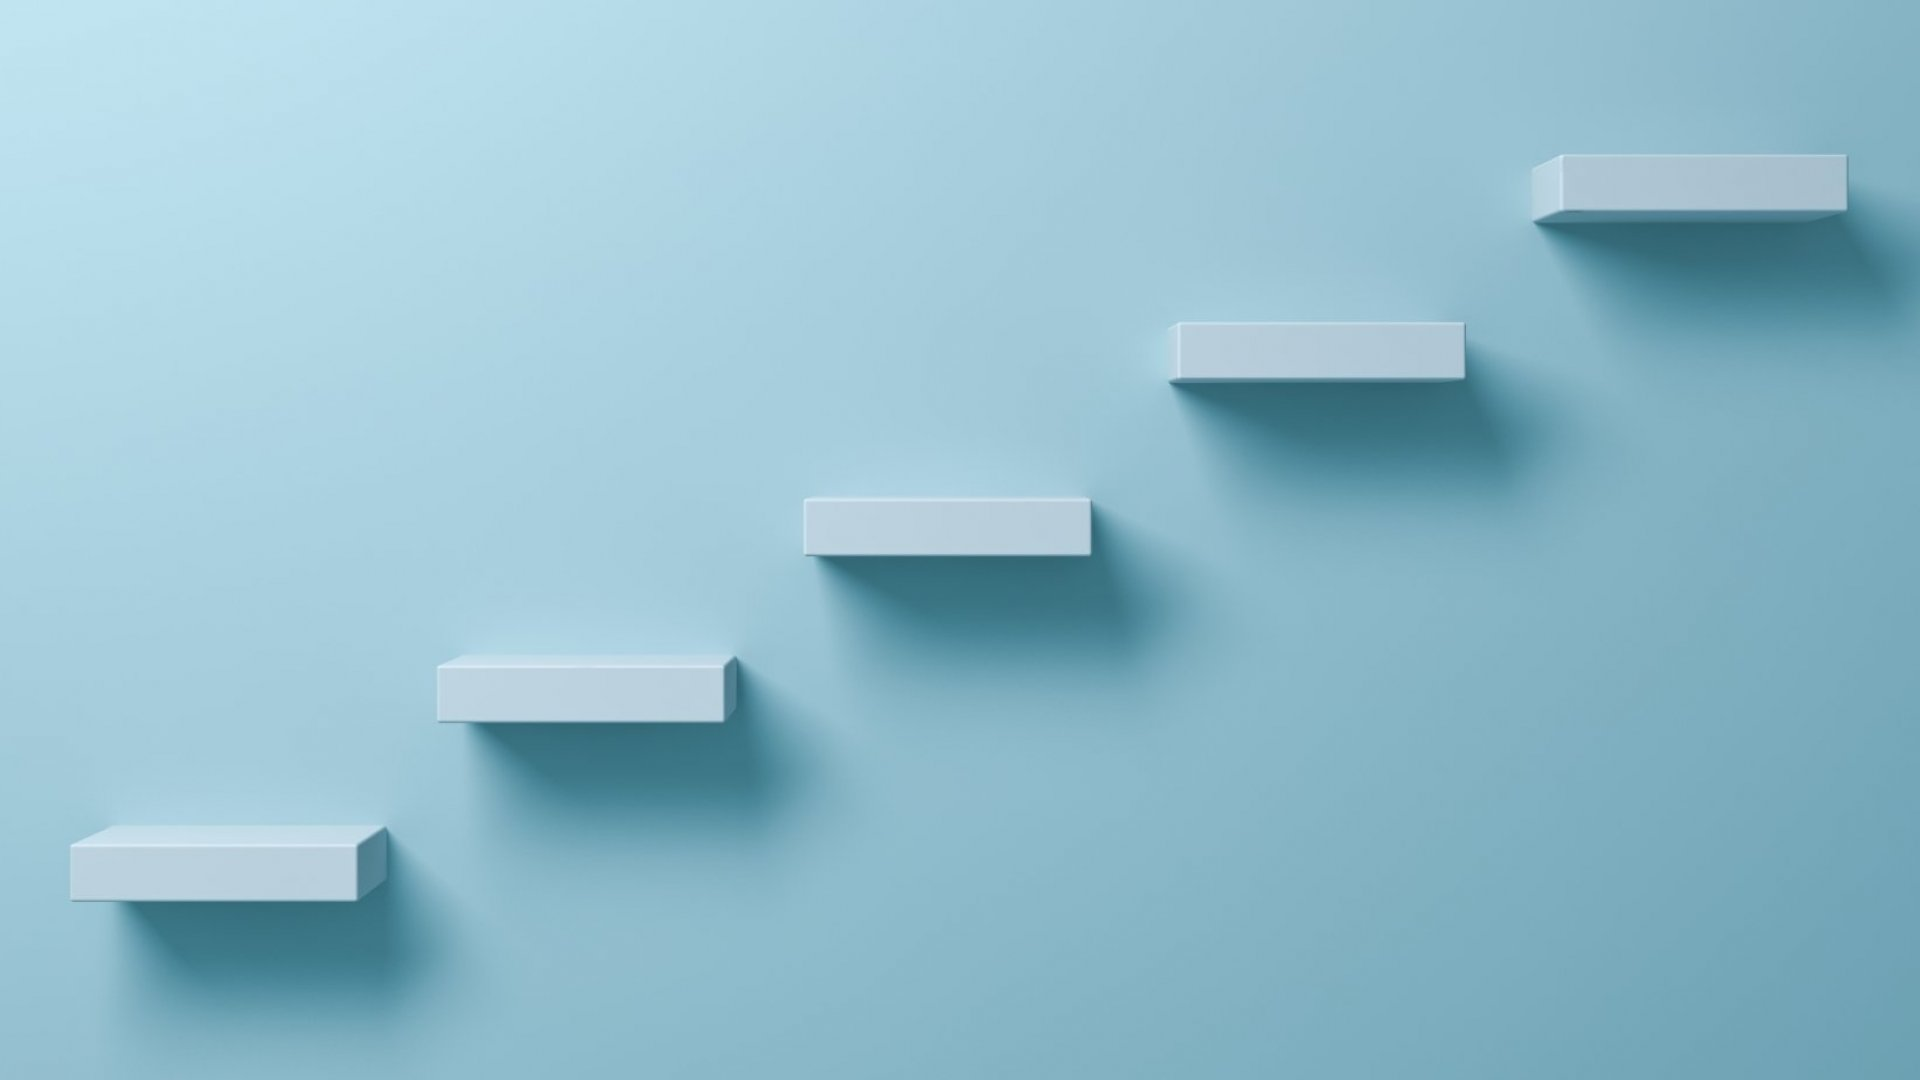 Can Thinking In Smaller Steps Guide Your Team to Victory? These 3 Techniques Will Show You How